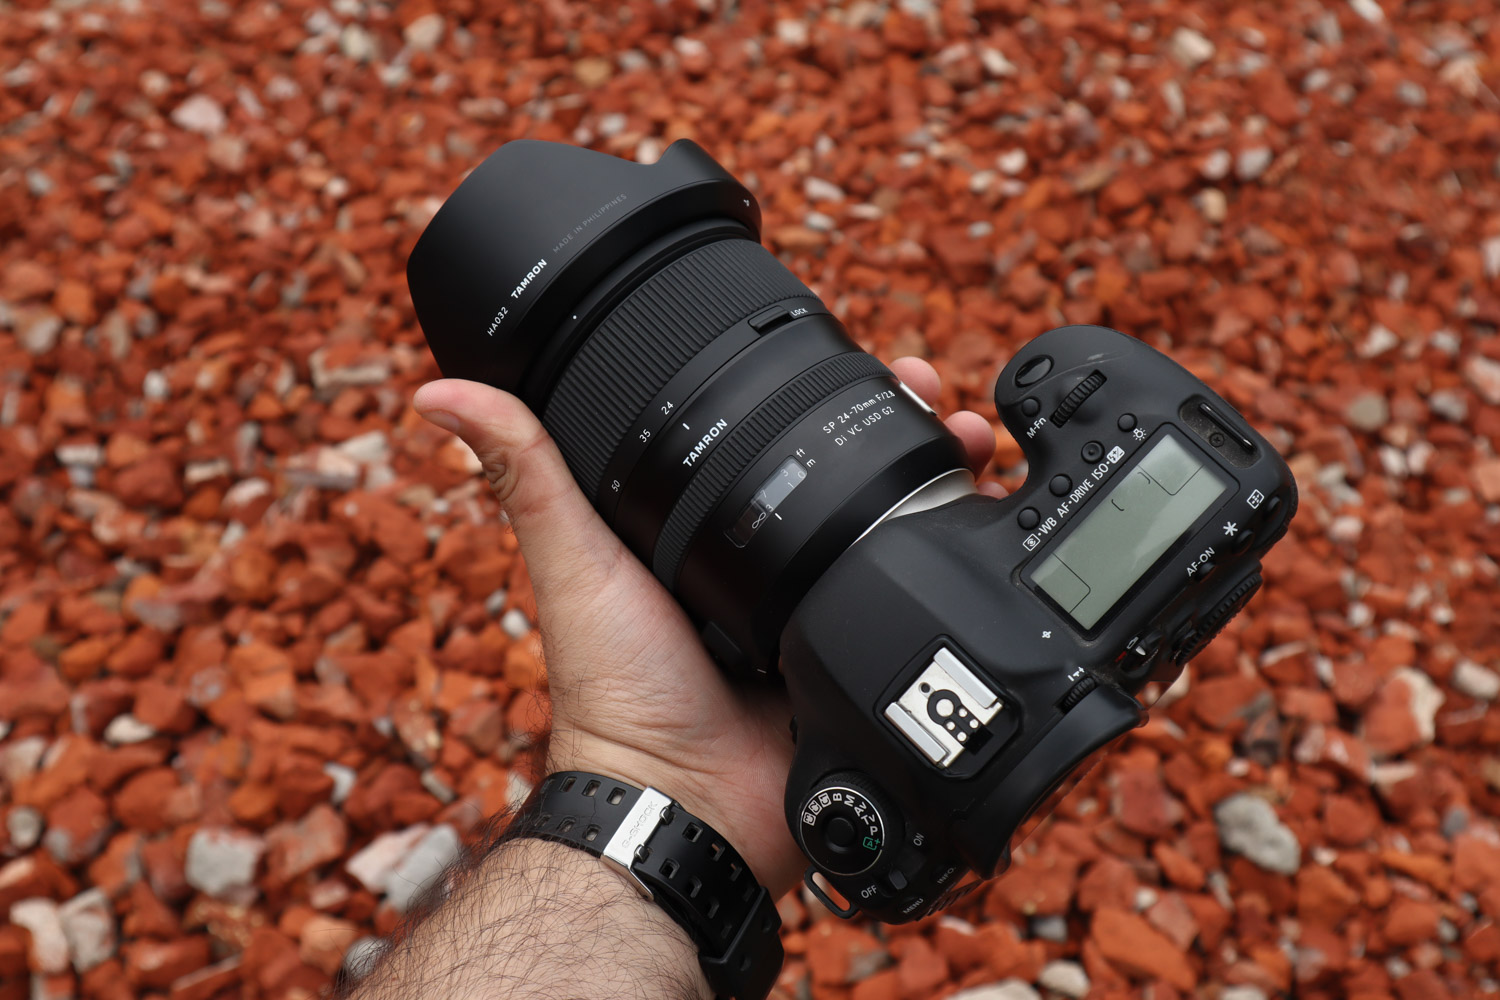 Tamron SP 24-70mm f/2.8 Di VC USD G2 Lens Review